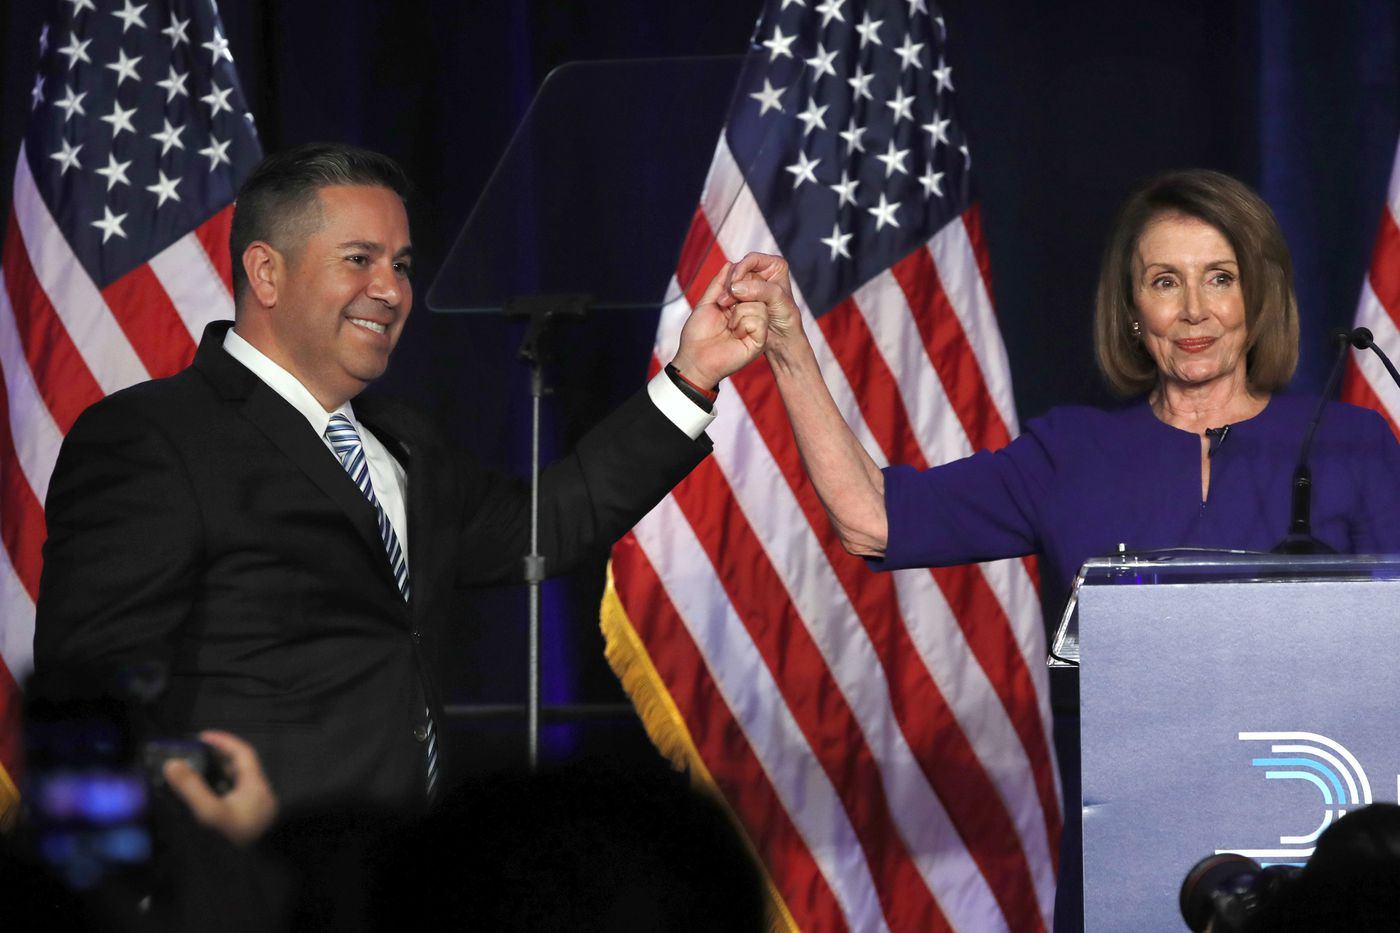 Dems on track to win control of House